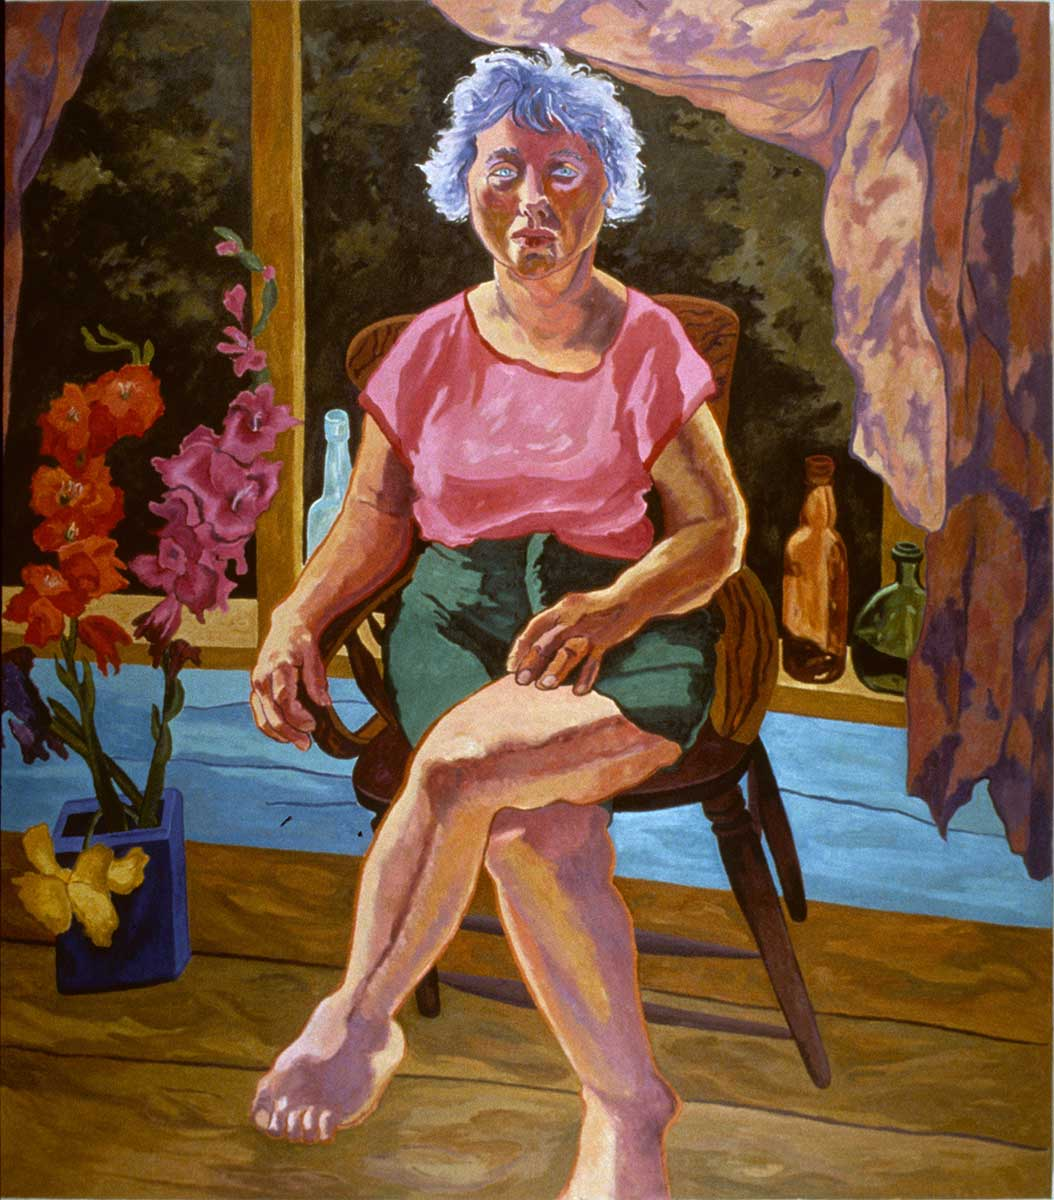 Carol at the Barn, Figurative oil painting by Mary Alice Copp